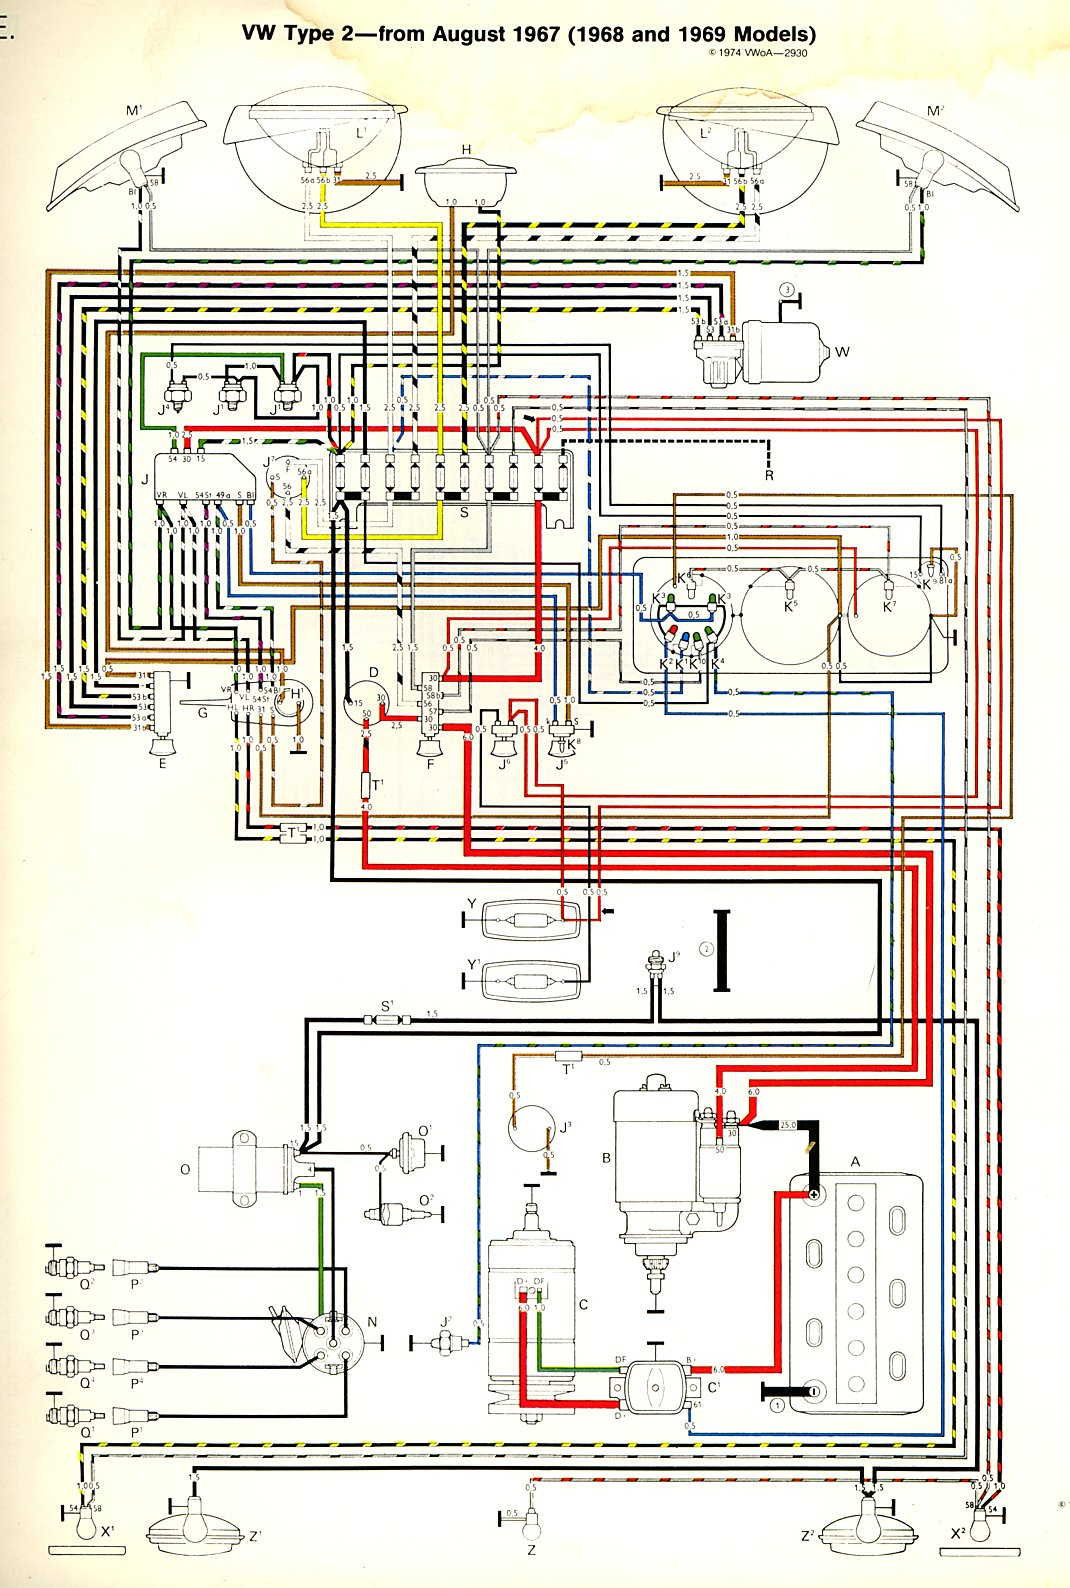 baybus_6869a bus wiring diagram vw wiring harness diagram \u2022 wiring diagrams j super beetle wiring diagram at bayanpartner.co